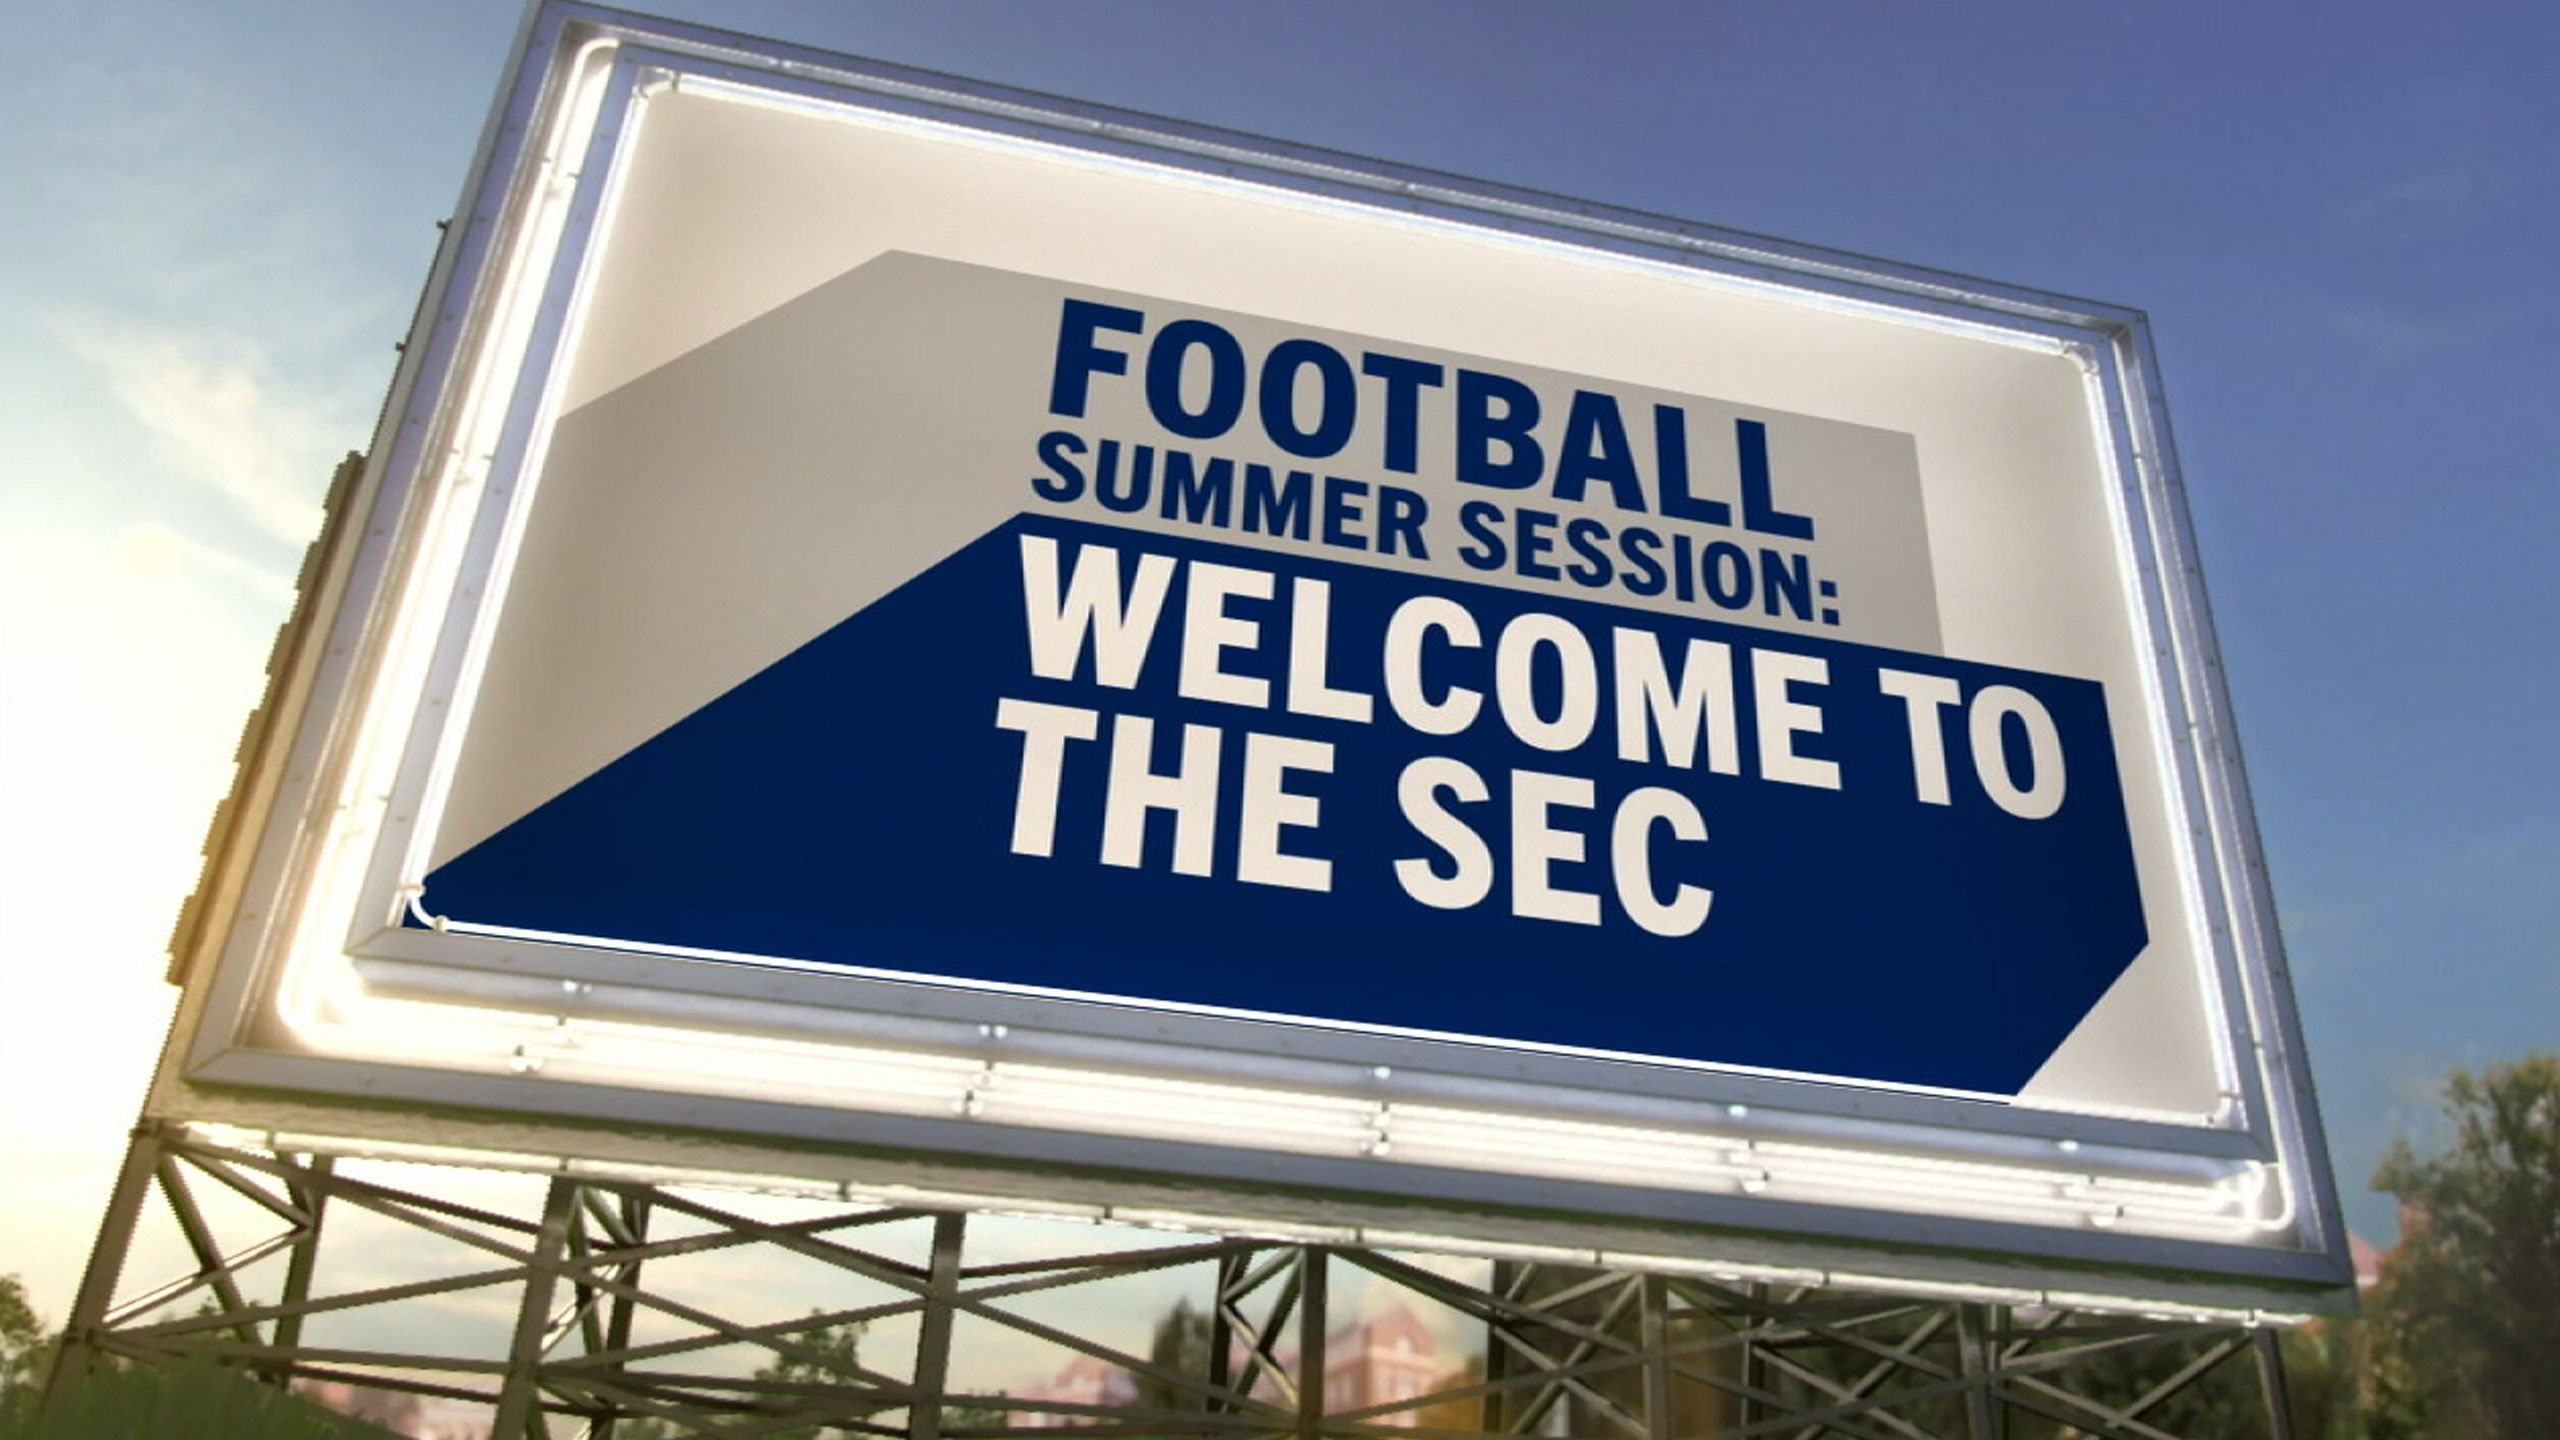 Football Summer Session: Welcome to the SEC